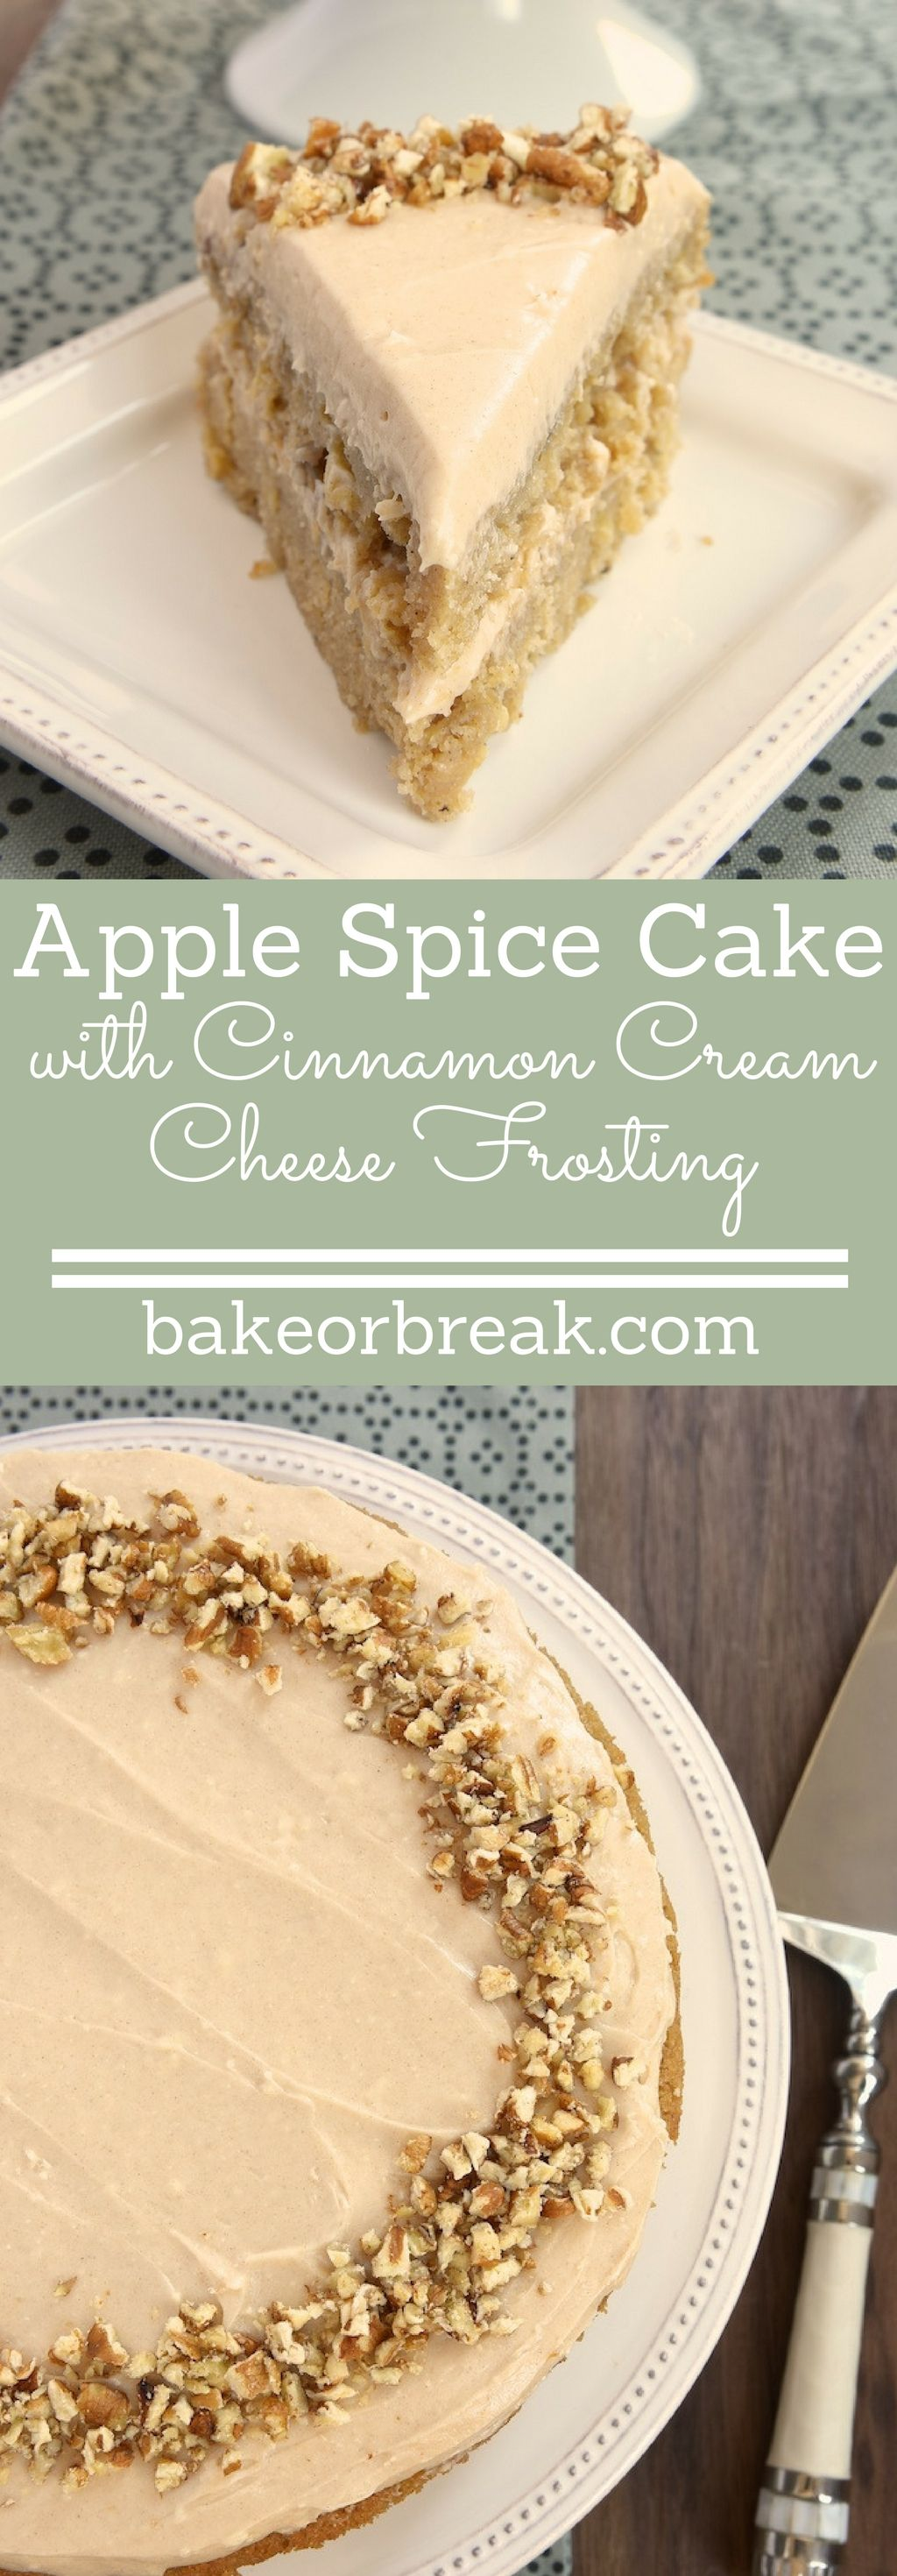 Apple Spice Cake with Cinnamon Cream Cheese Frosting #applerecipes